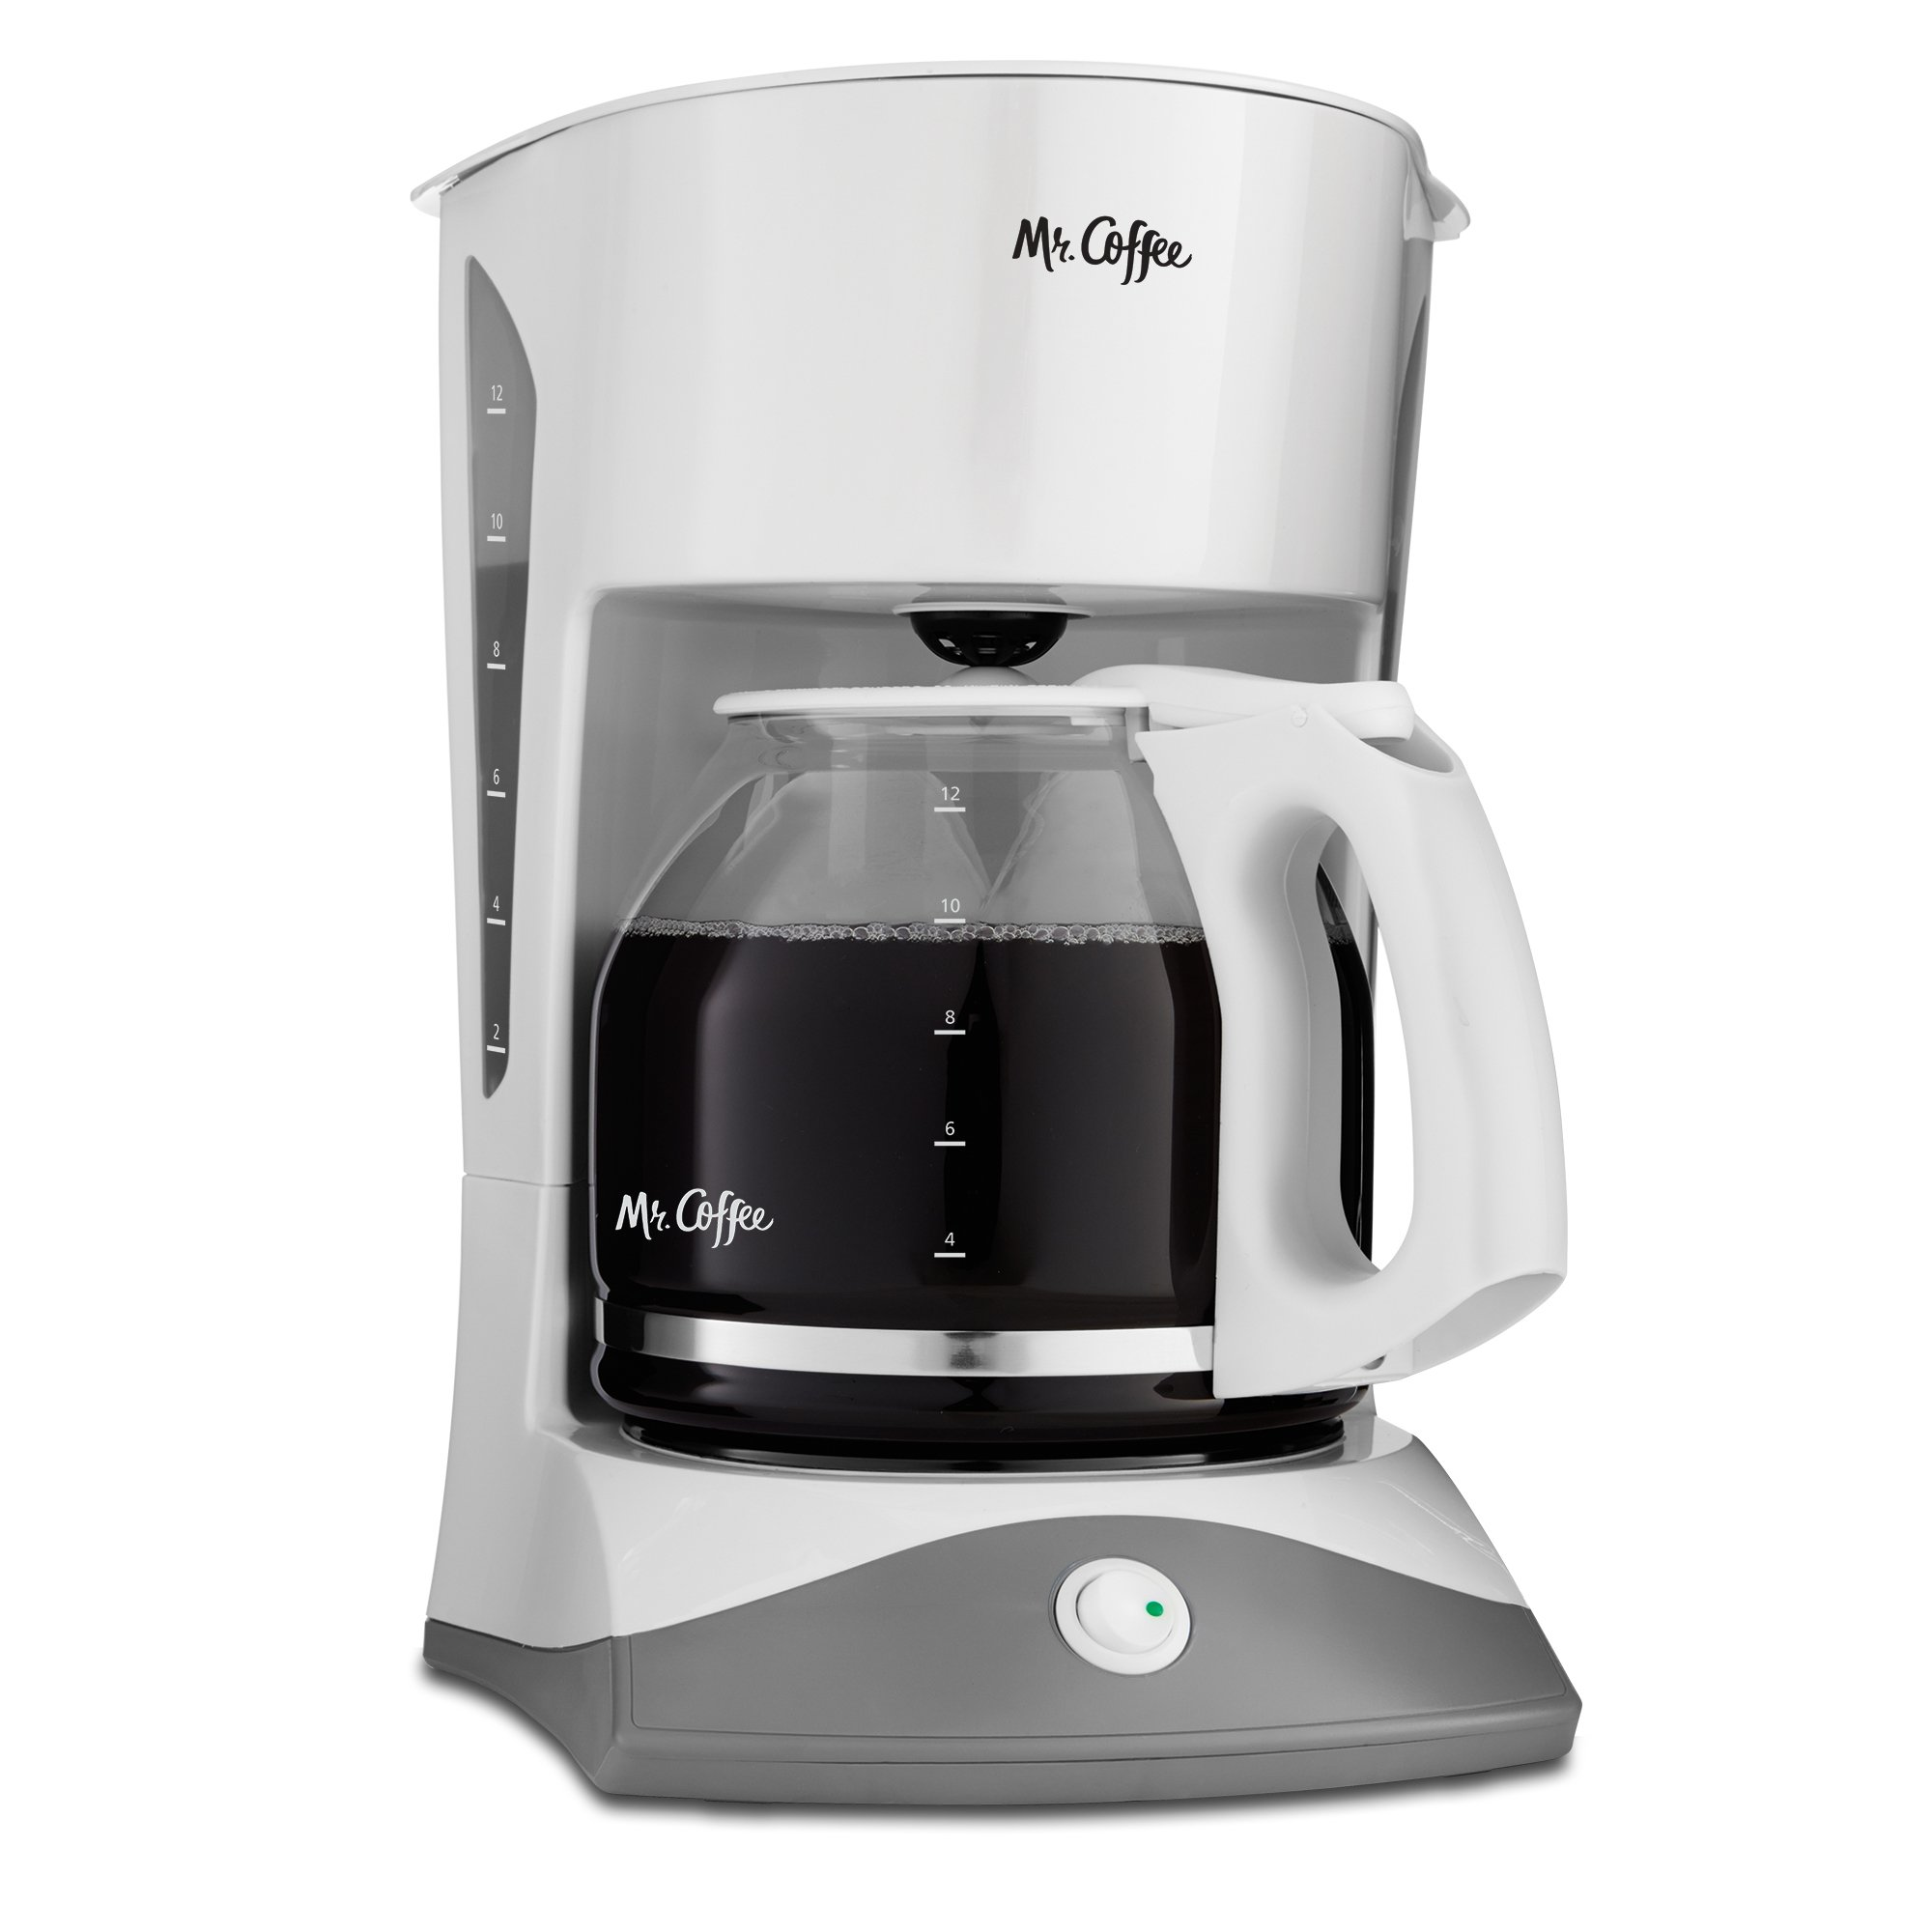 Mr. Coffee 12-Cup Manual Coffee Maker, White by Mr. Coffee